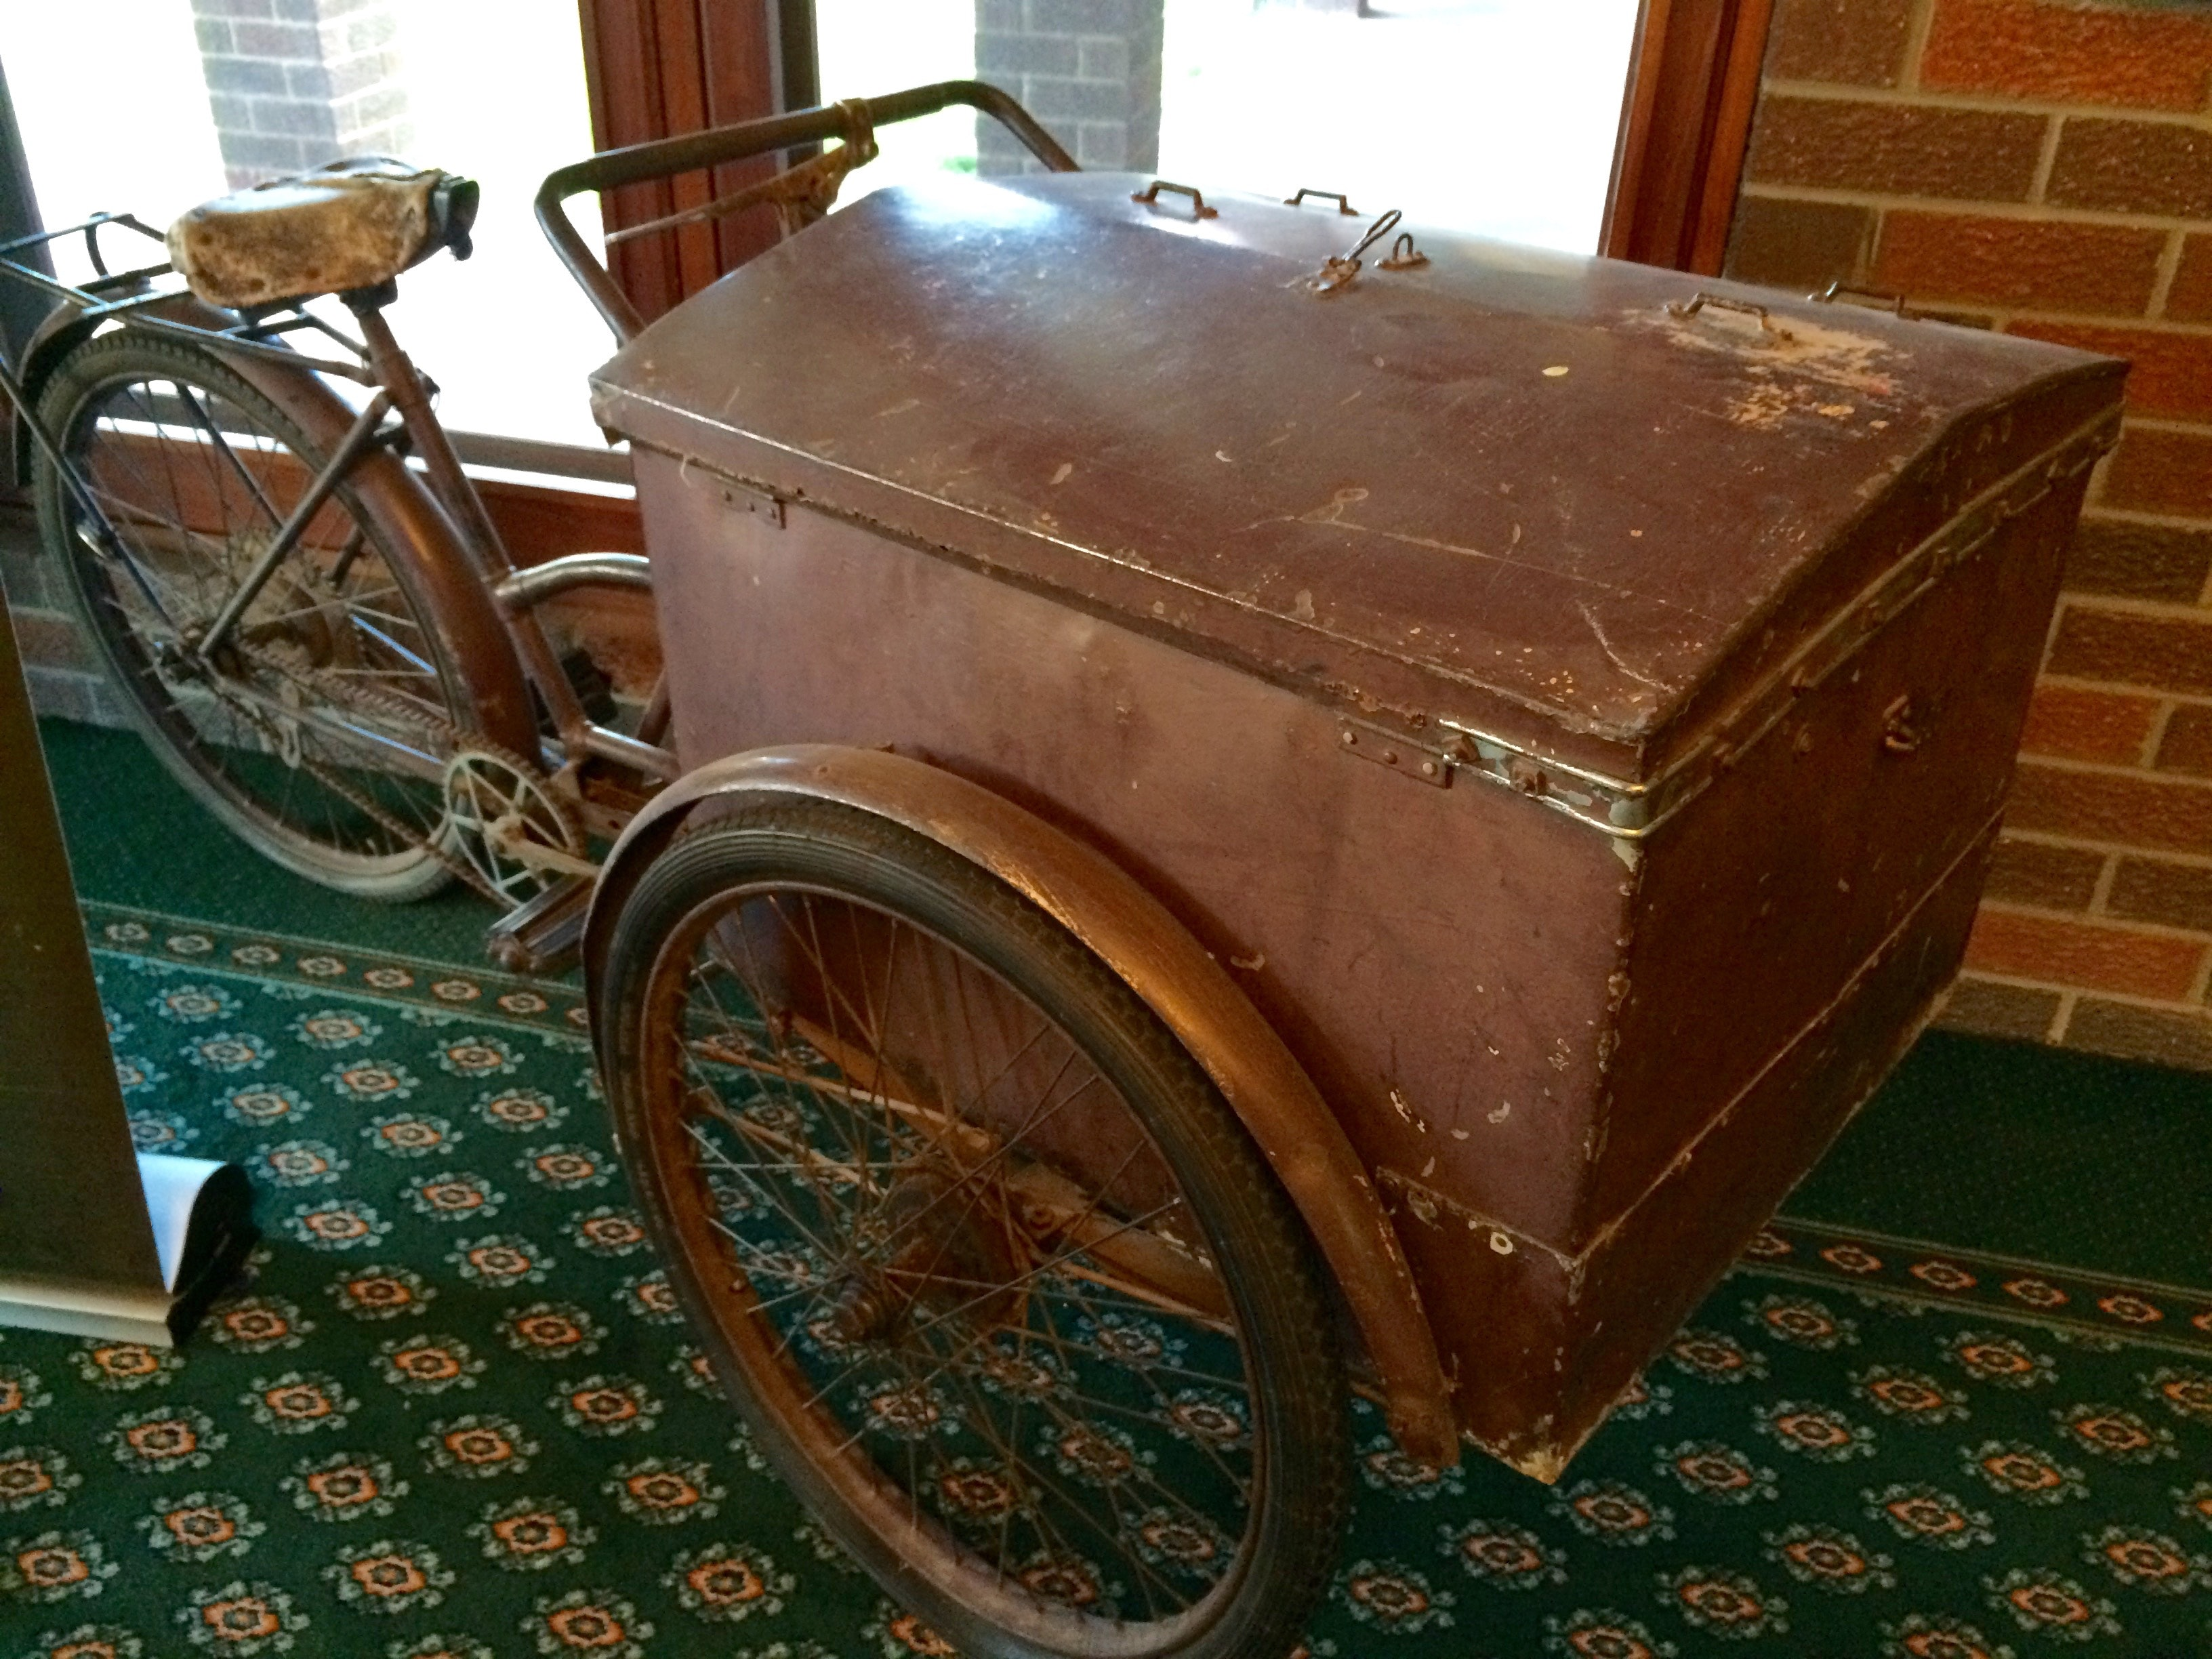 Delivery bike, Hyden